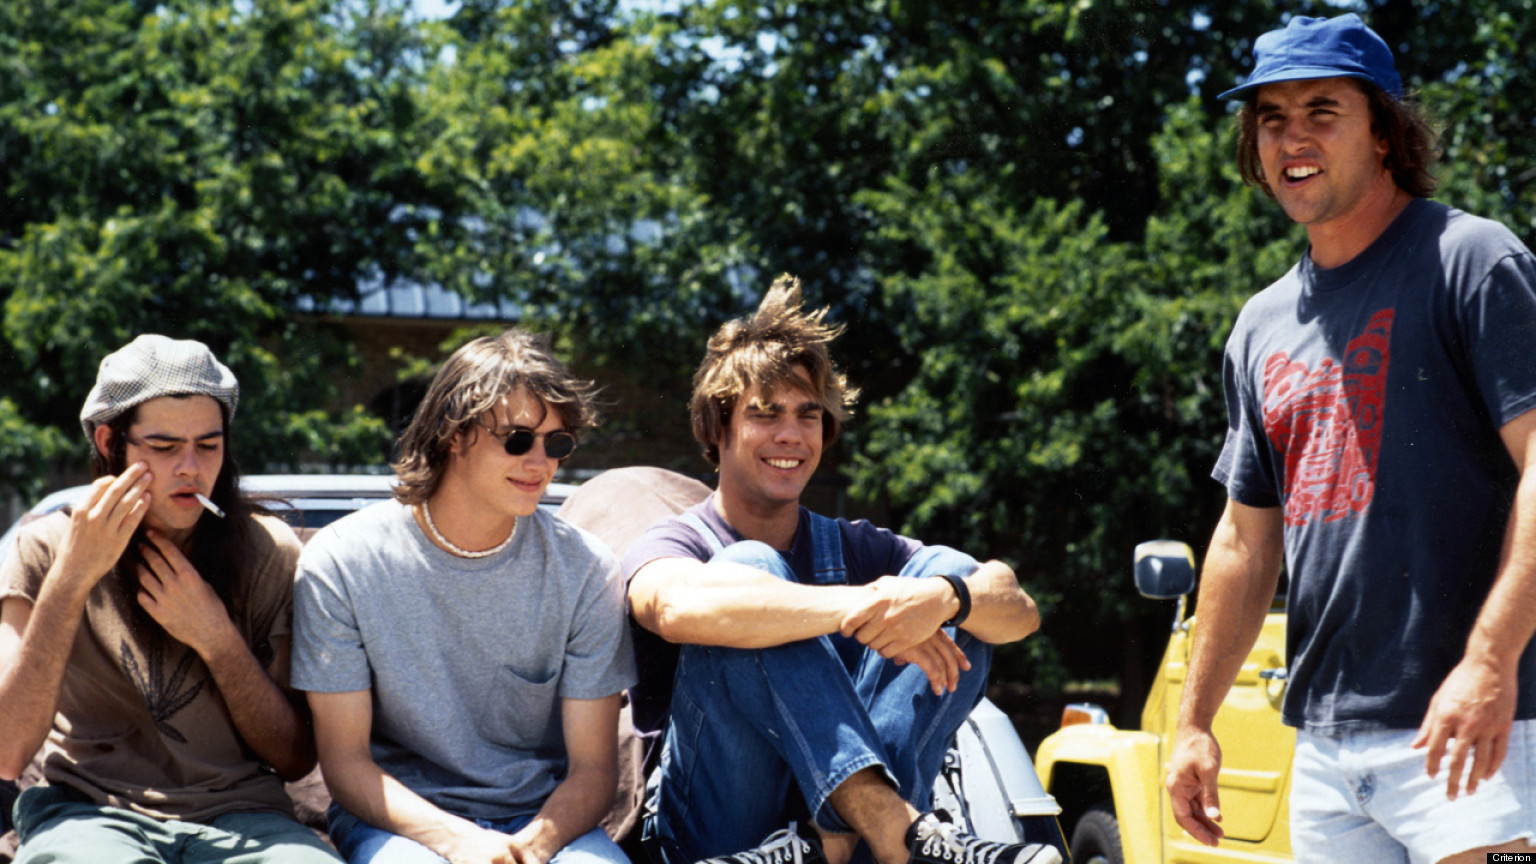 Director Richard Linklater with the boys on set. (Gramercy)